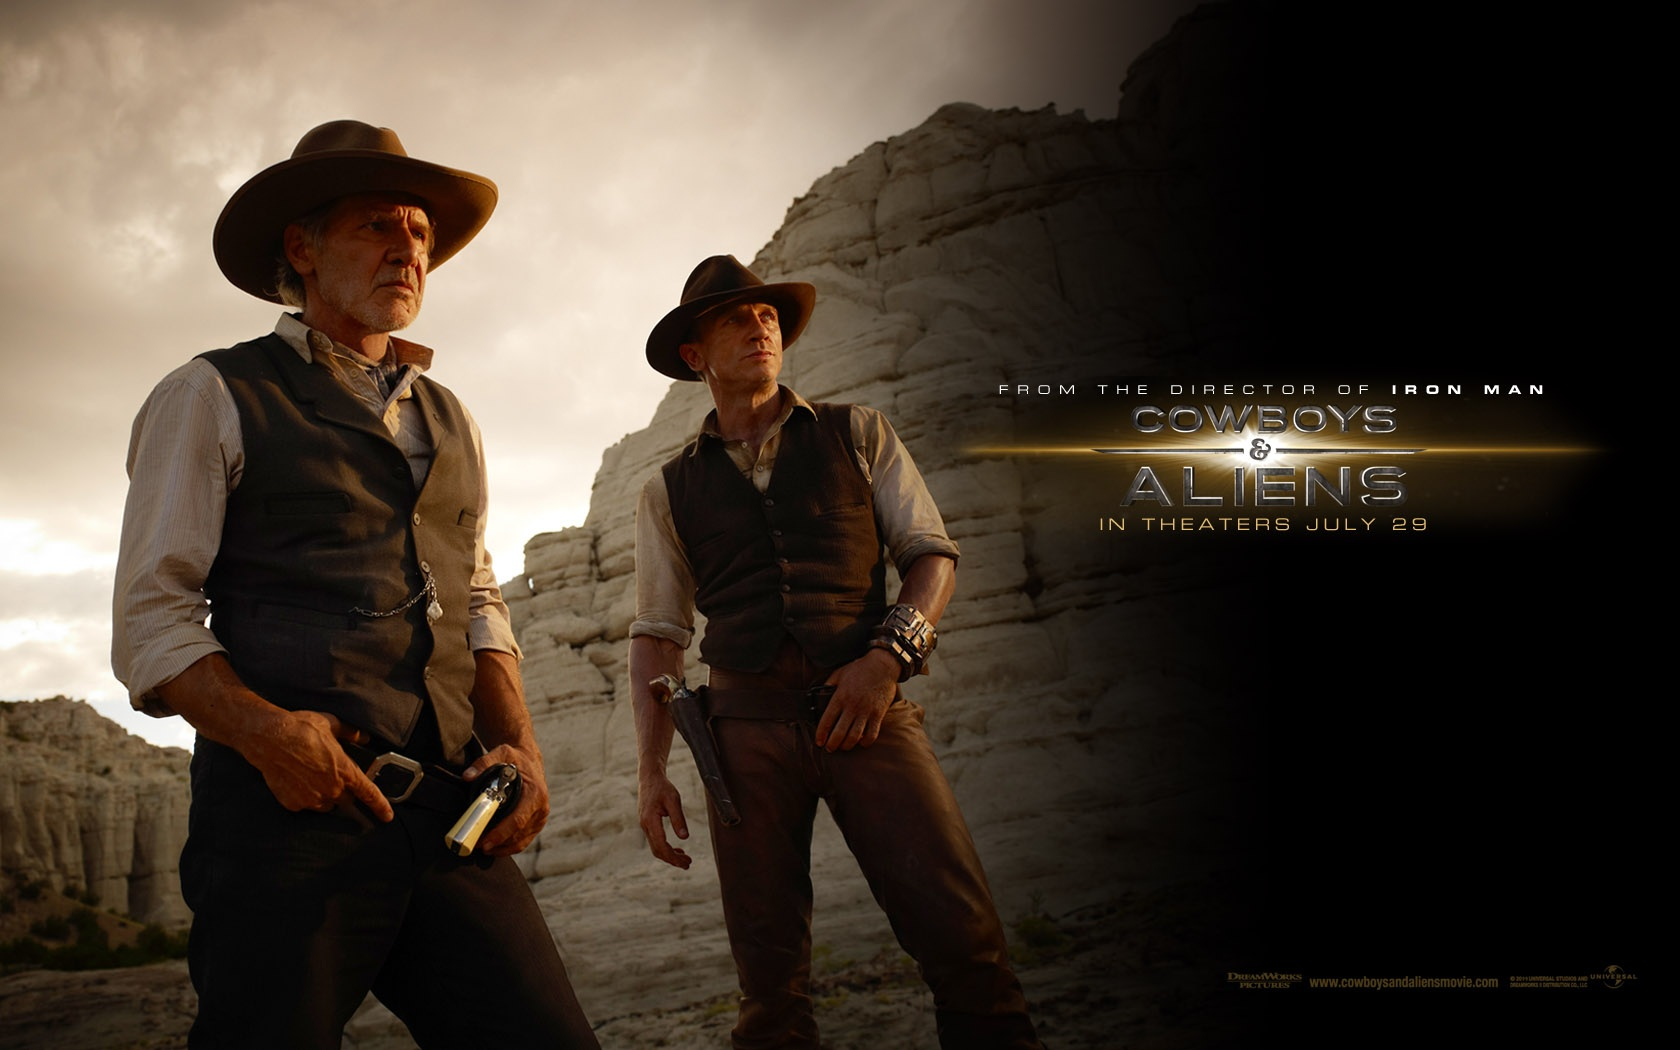 Hot Cowboy Wallpaper Cowboys And Aliens-harrison